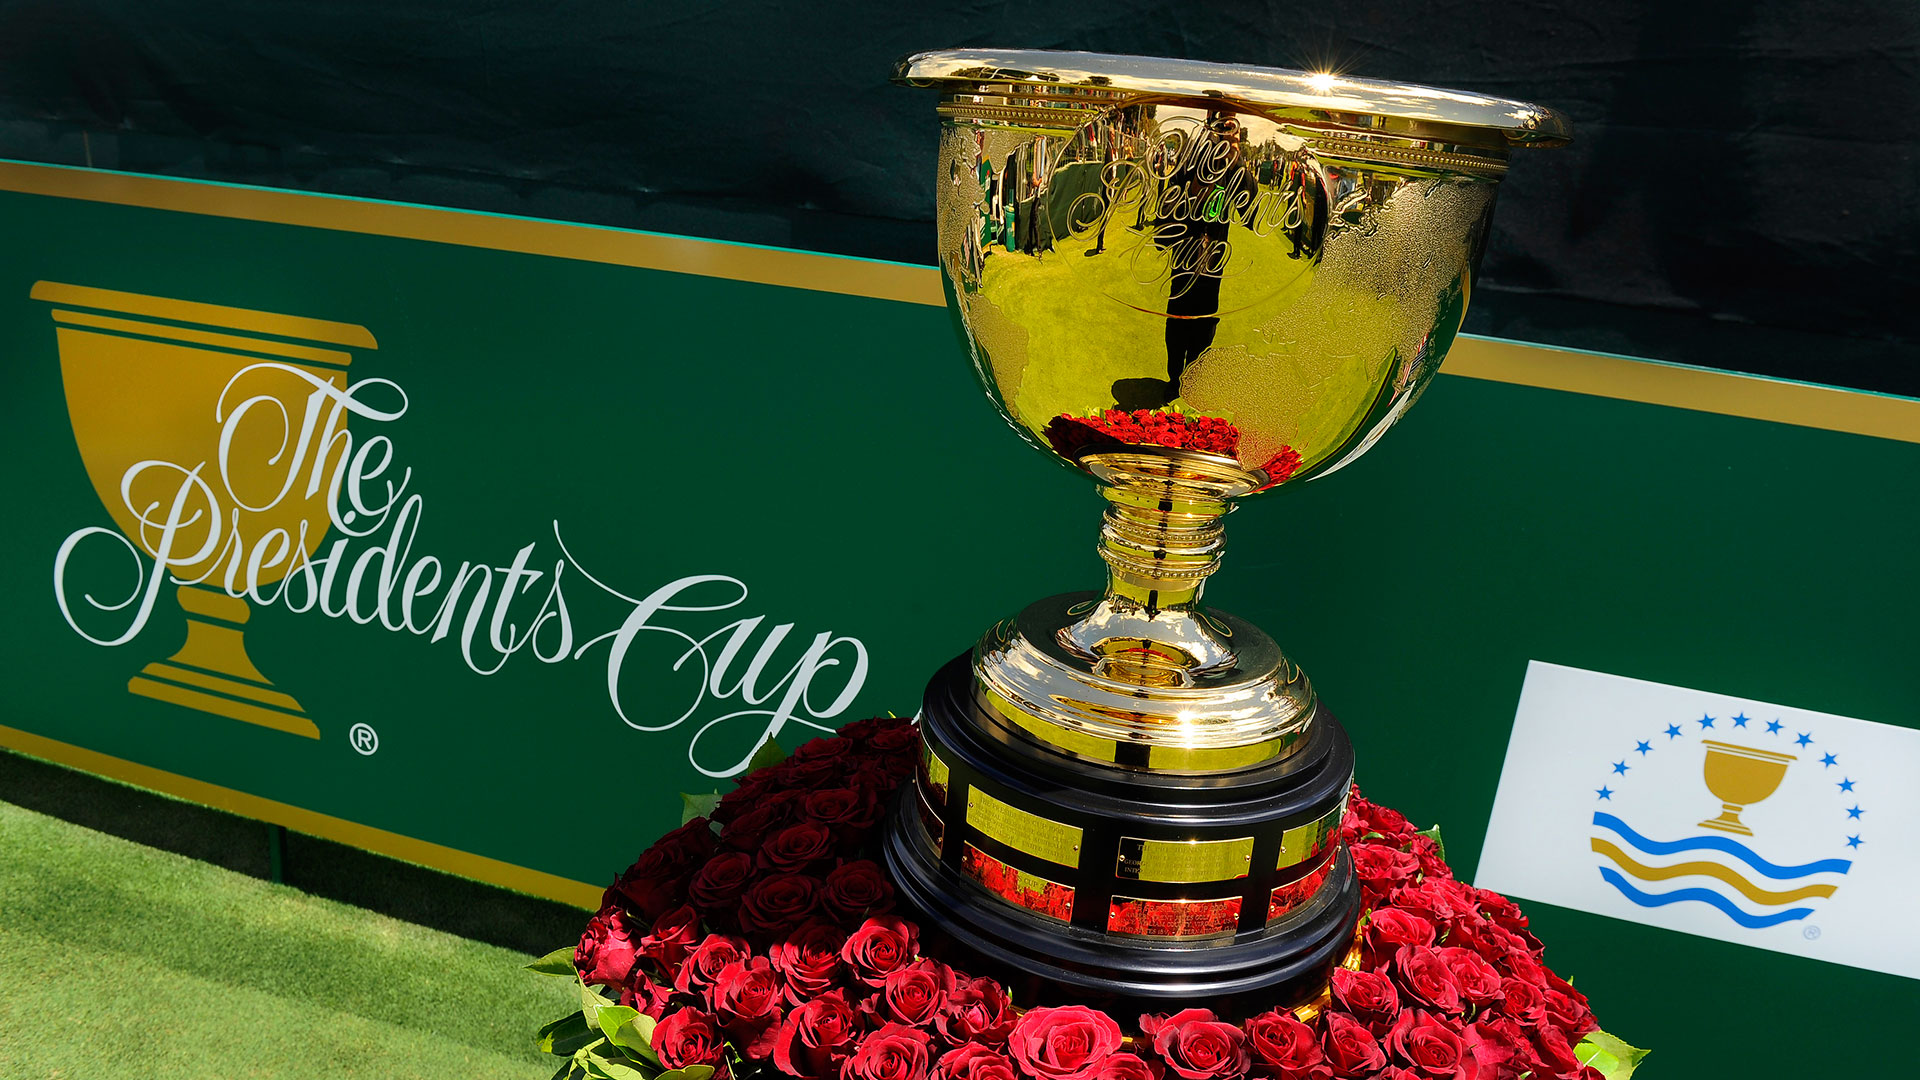 2019 Presidents Cup returning to Royal Melbourne | Golf ...